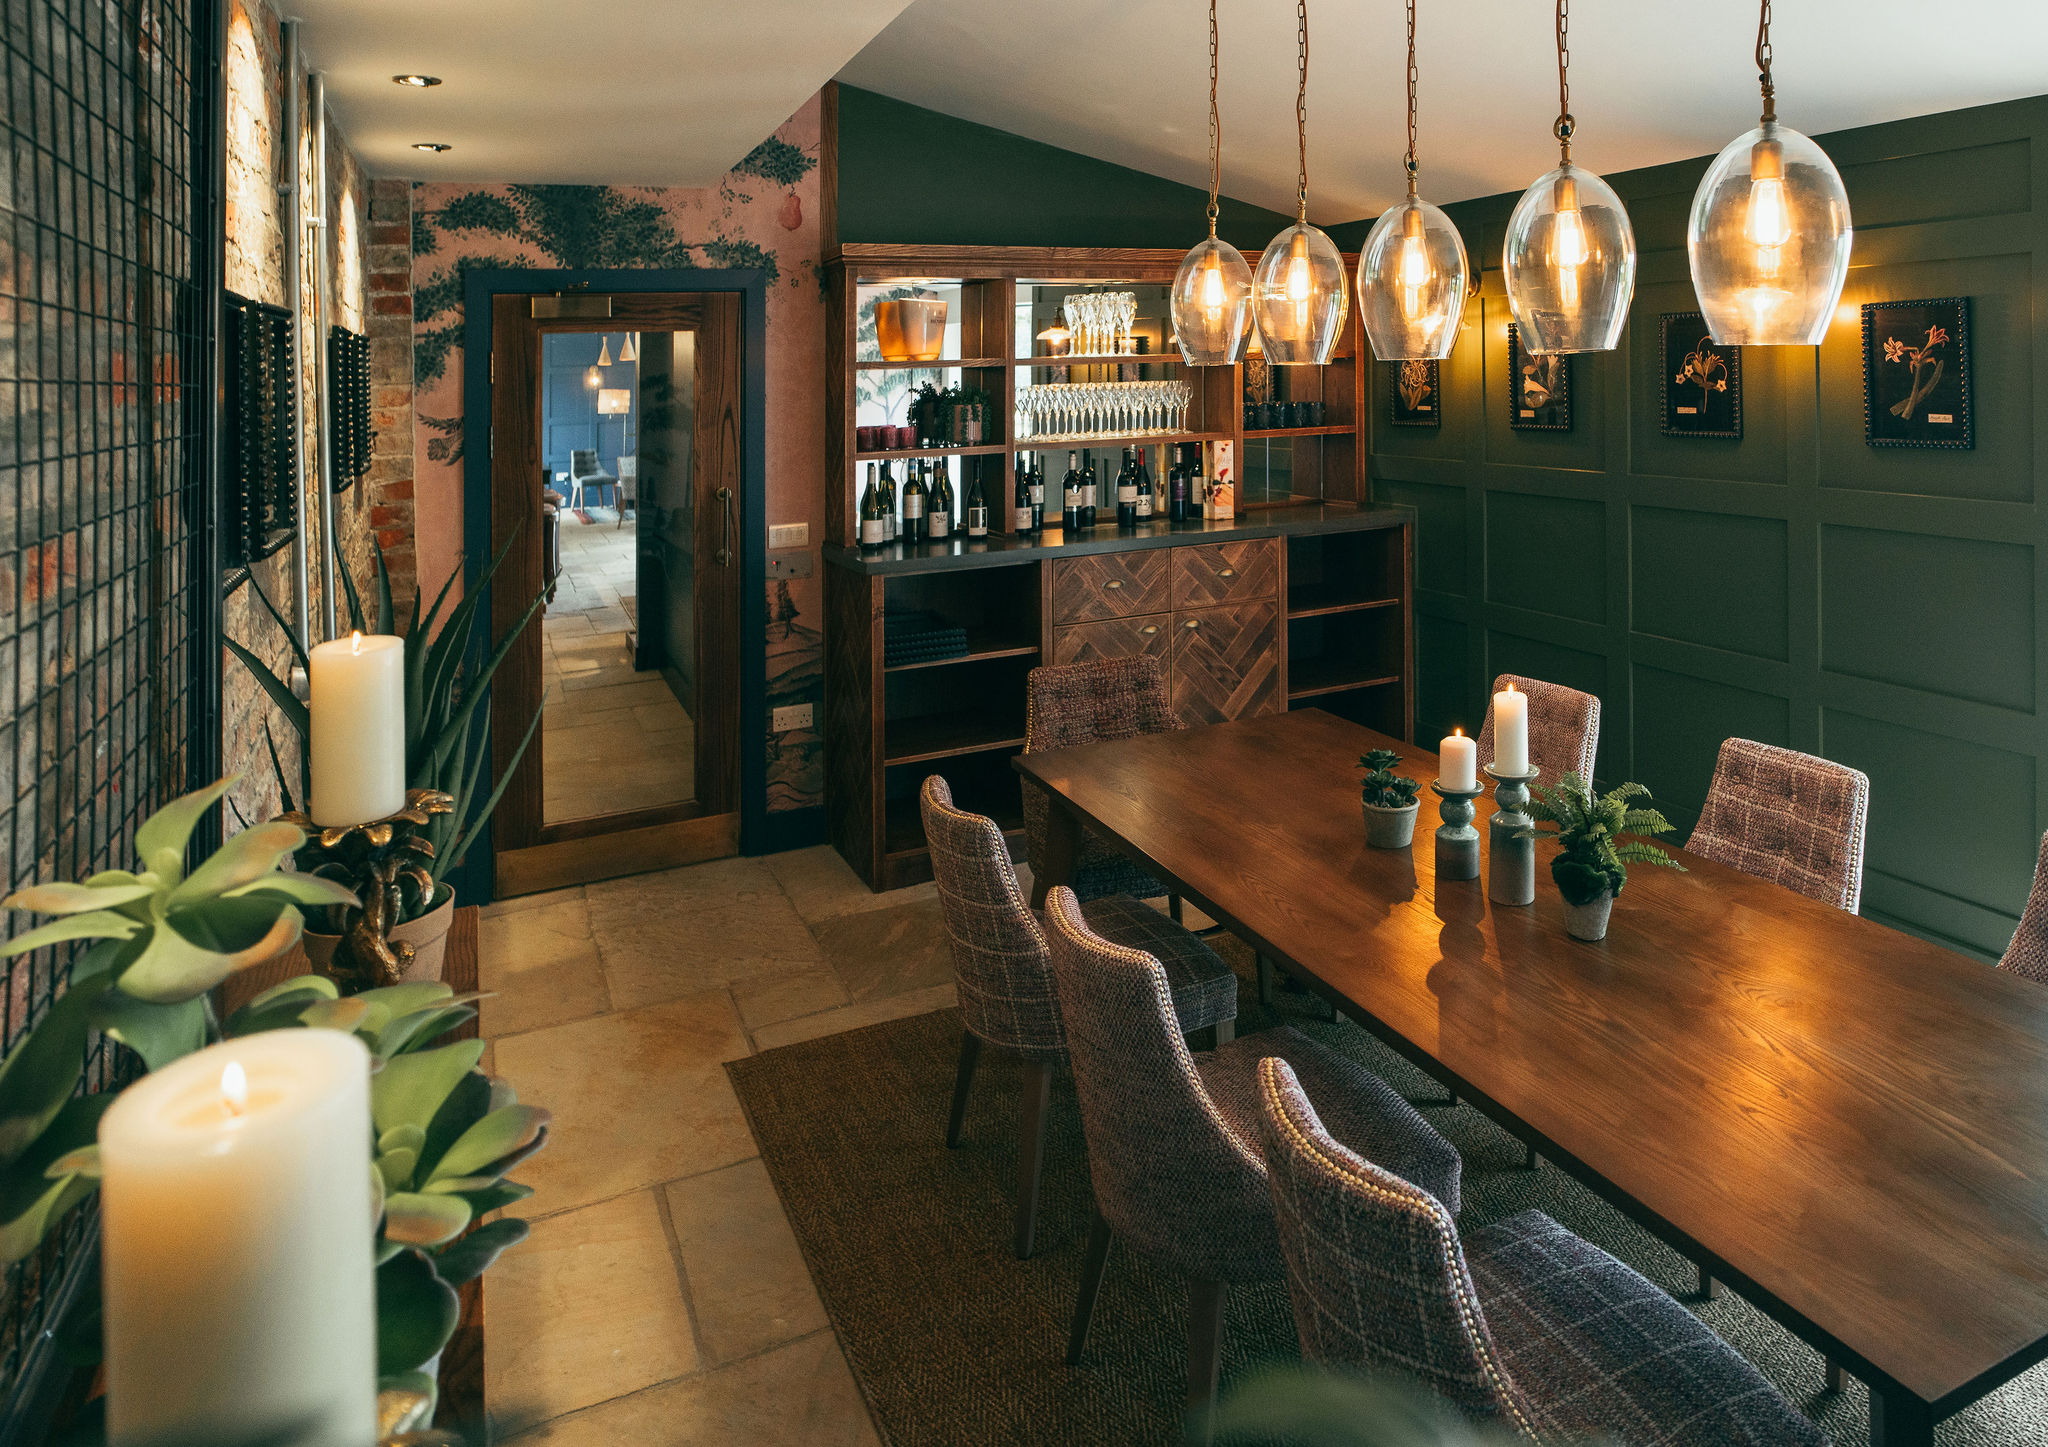 <p>An extension of the restaurant, seating 8 for a more private and intimate experience.<br /> Call 01740 665419 to enquire or email glasshouse@wynyardhall.co.uk.</p>